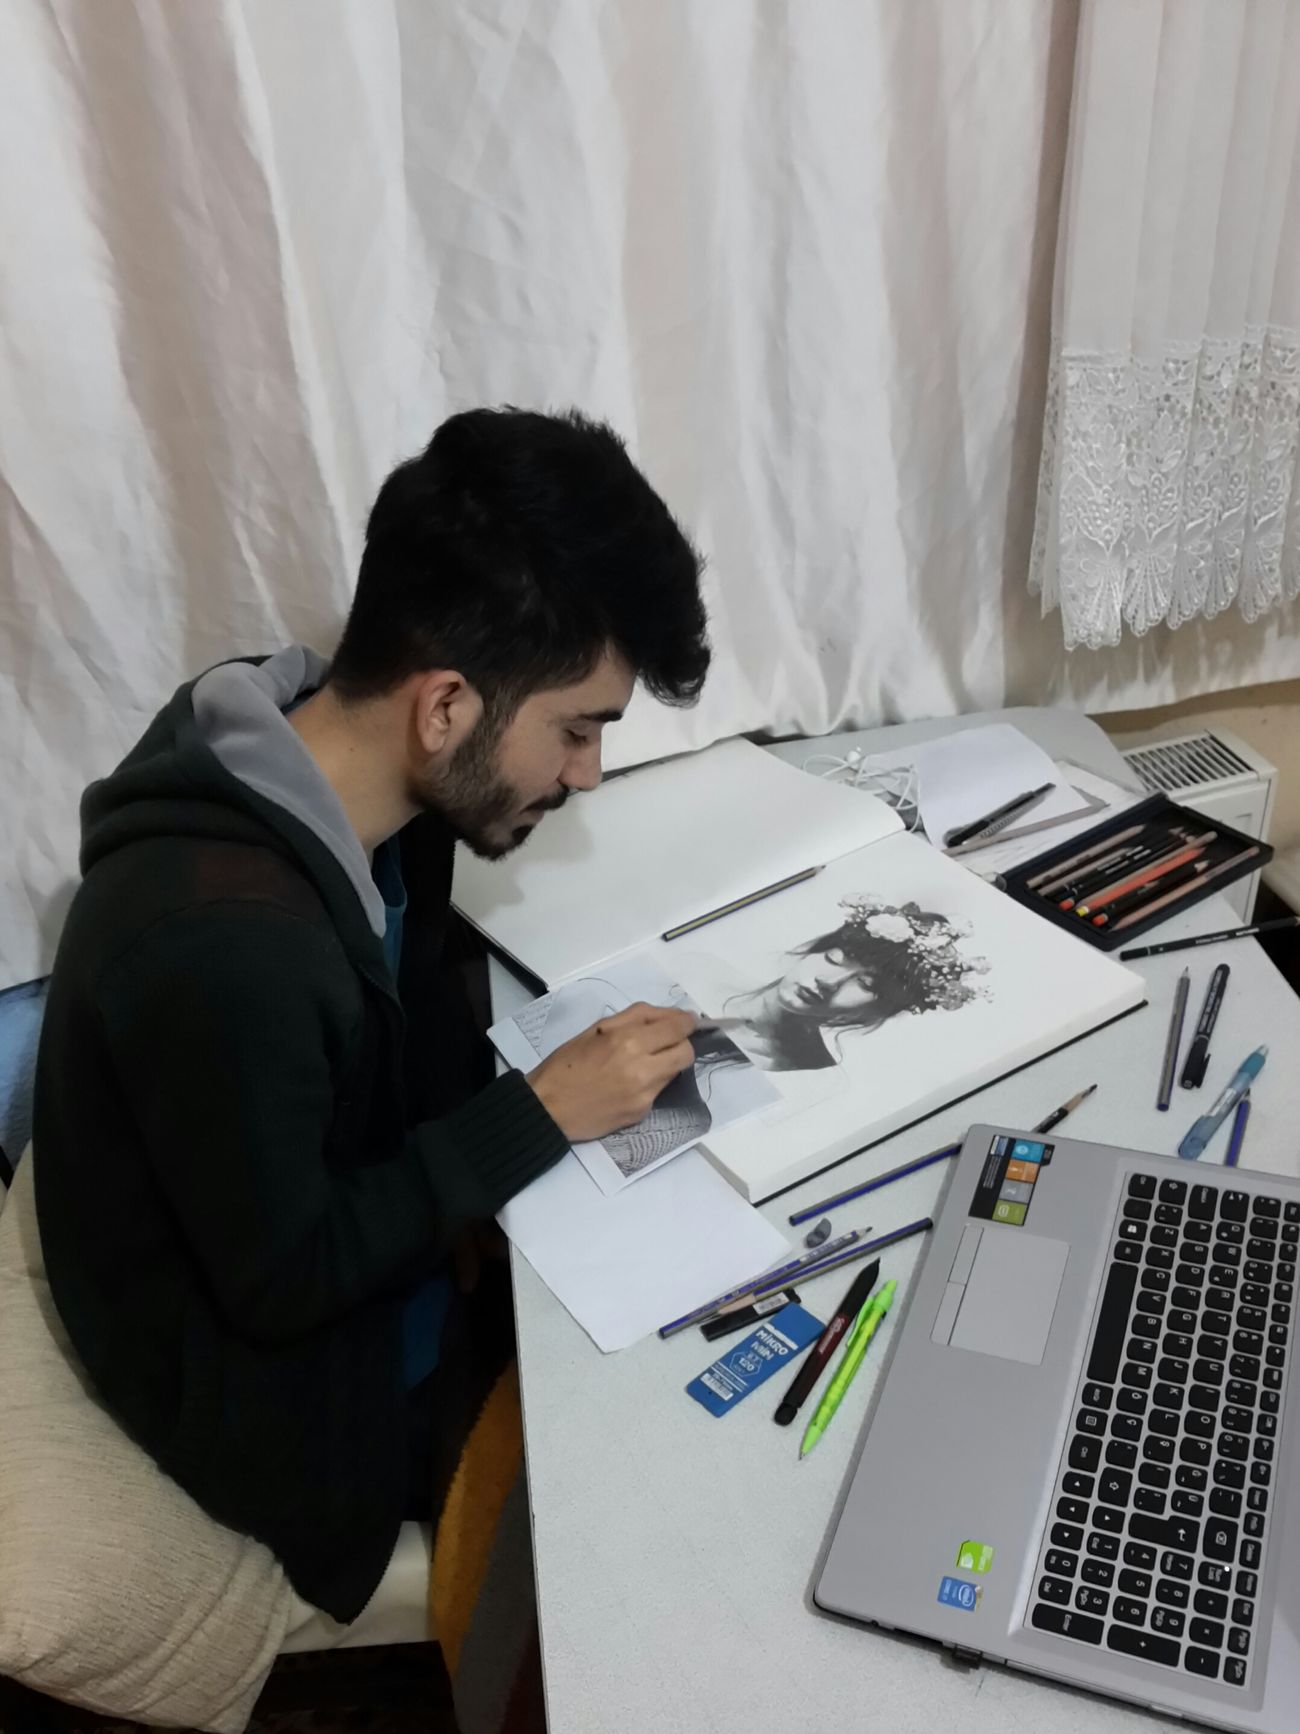 My drawing pencil Drawing Draw Drawingtime Pencil Pencil Drawing Art ArtWork Artist Art, Drawing, Creativity Art Gallery